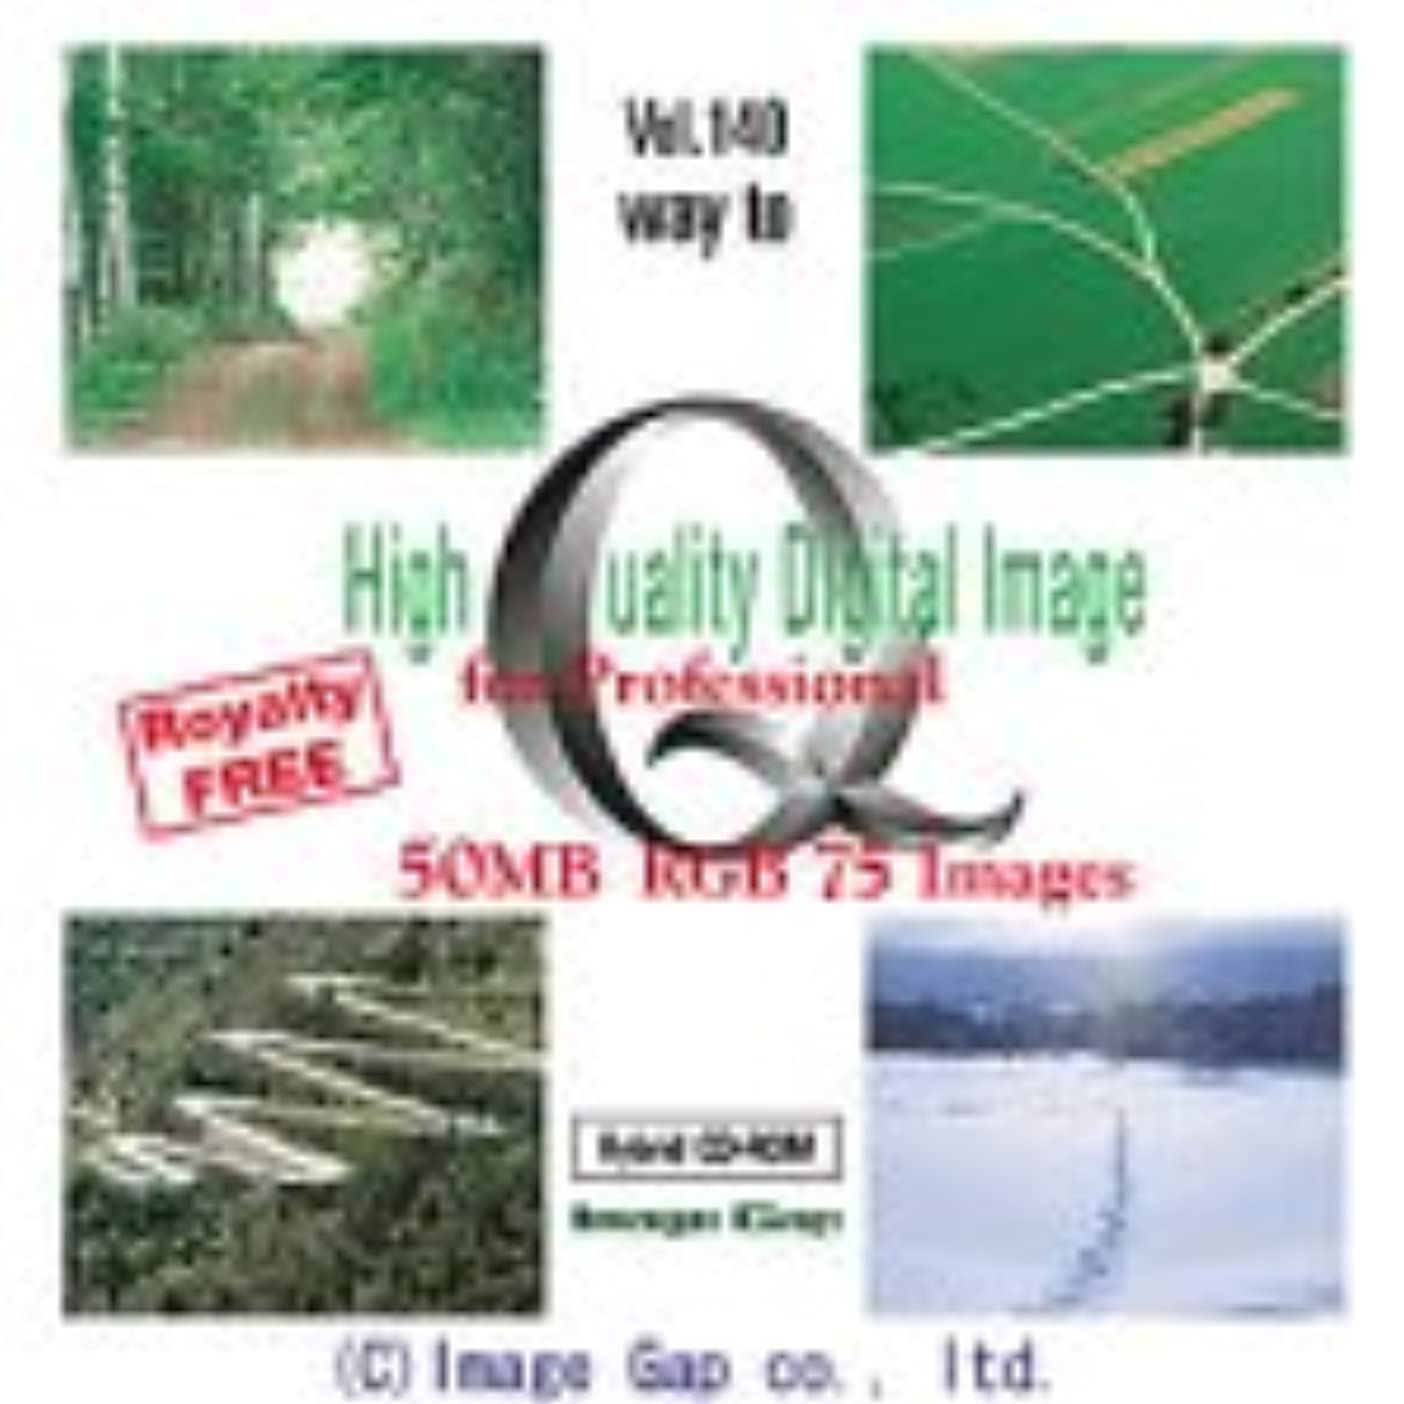 落胆する誇張する彼のHigh Quality Digital Image Road to